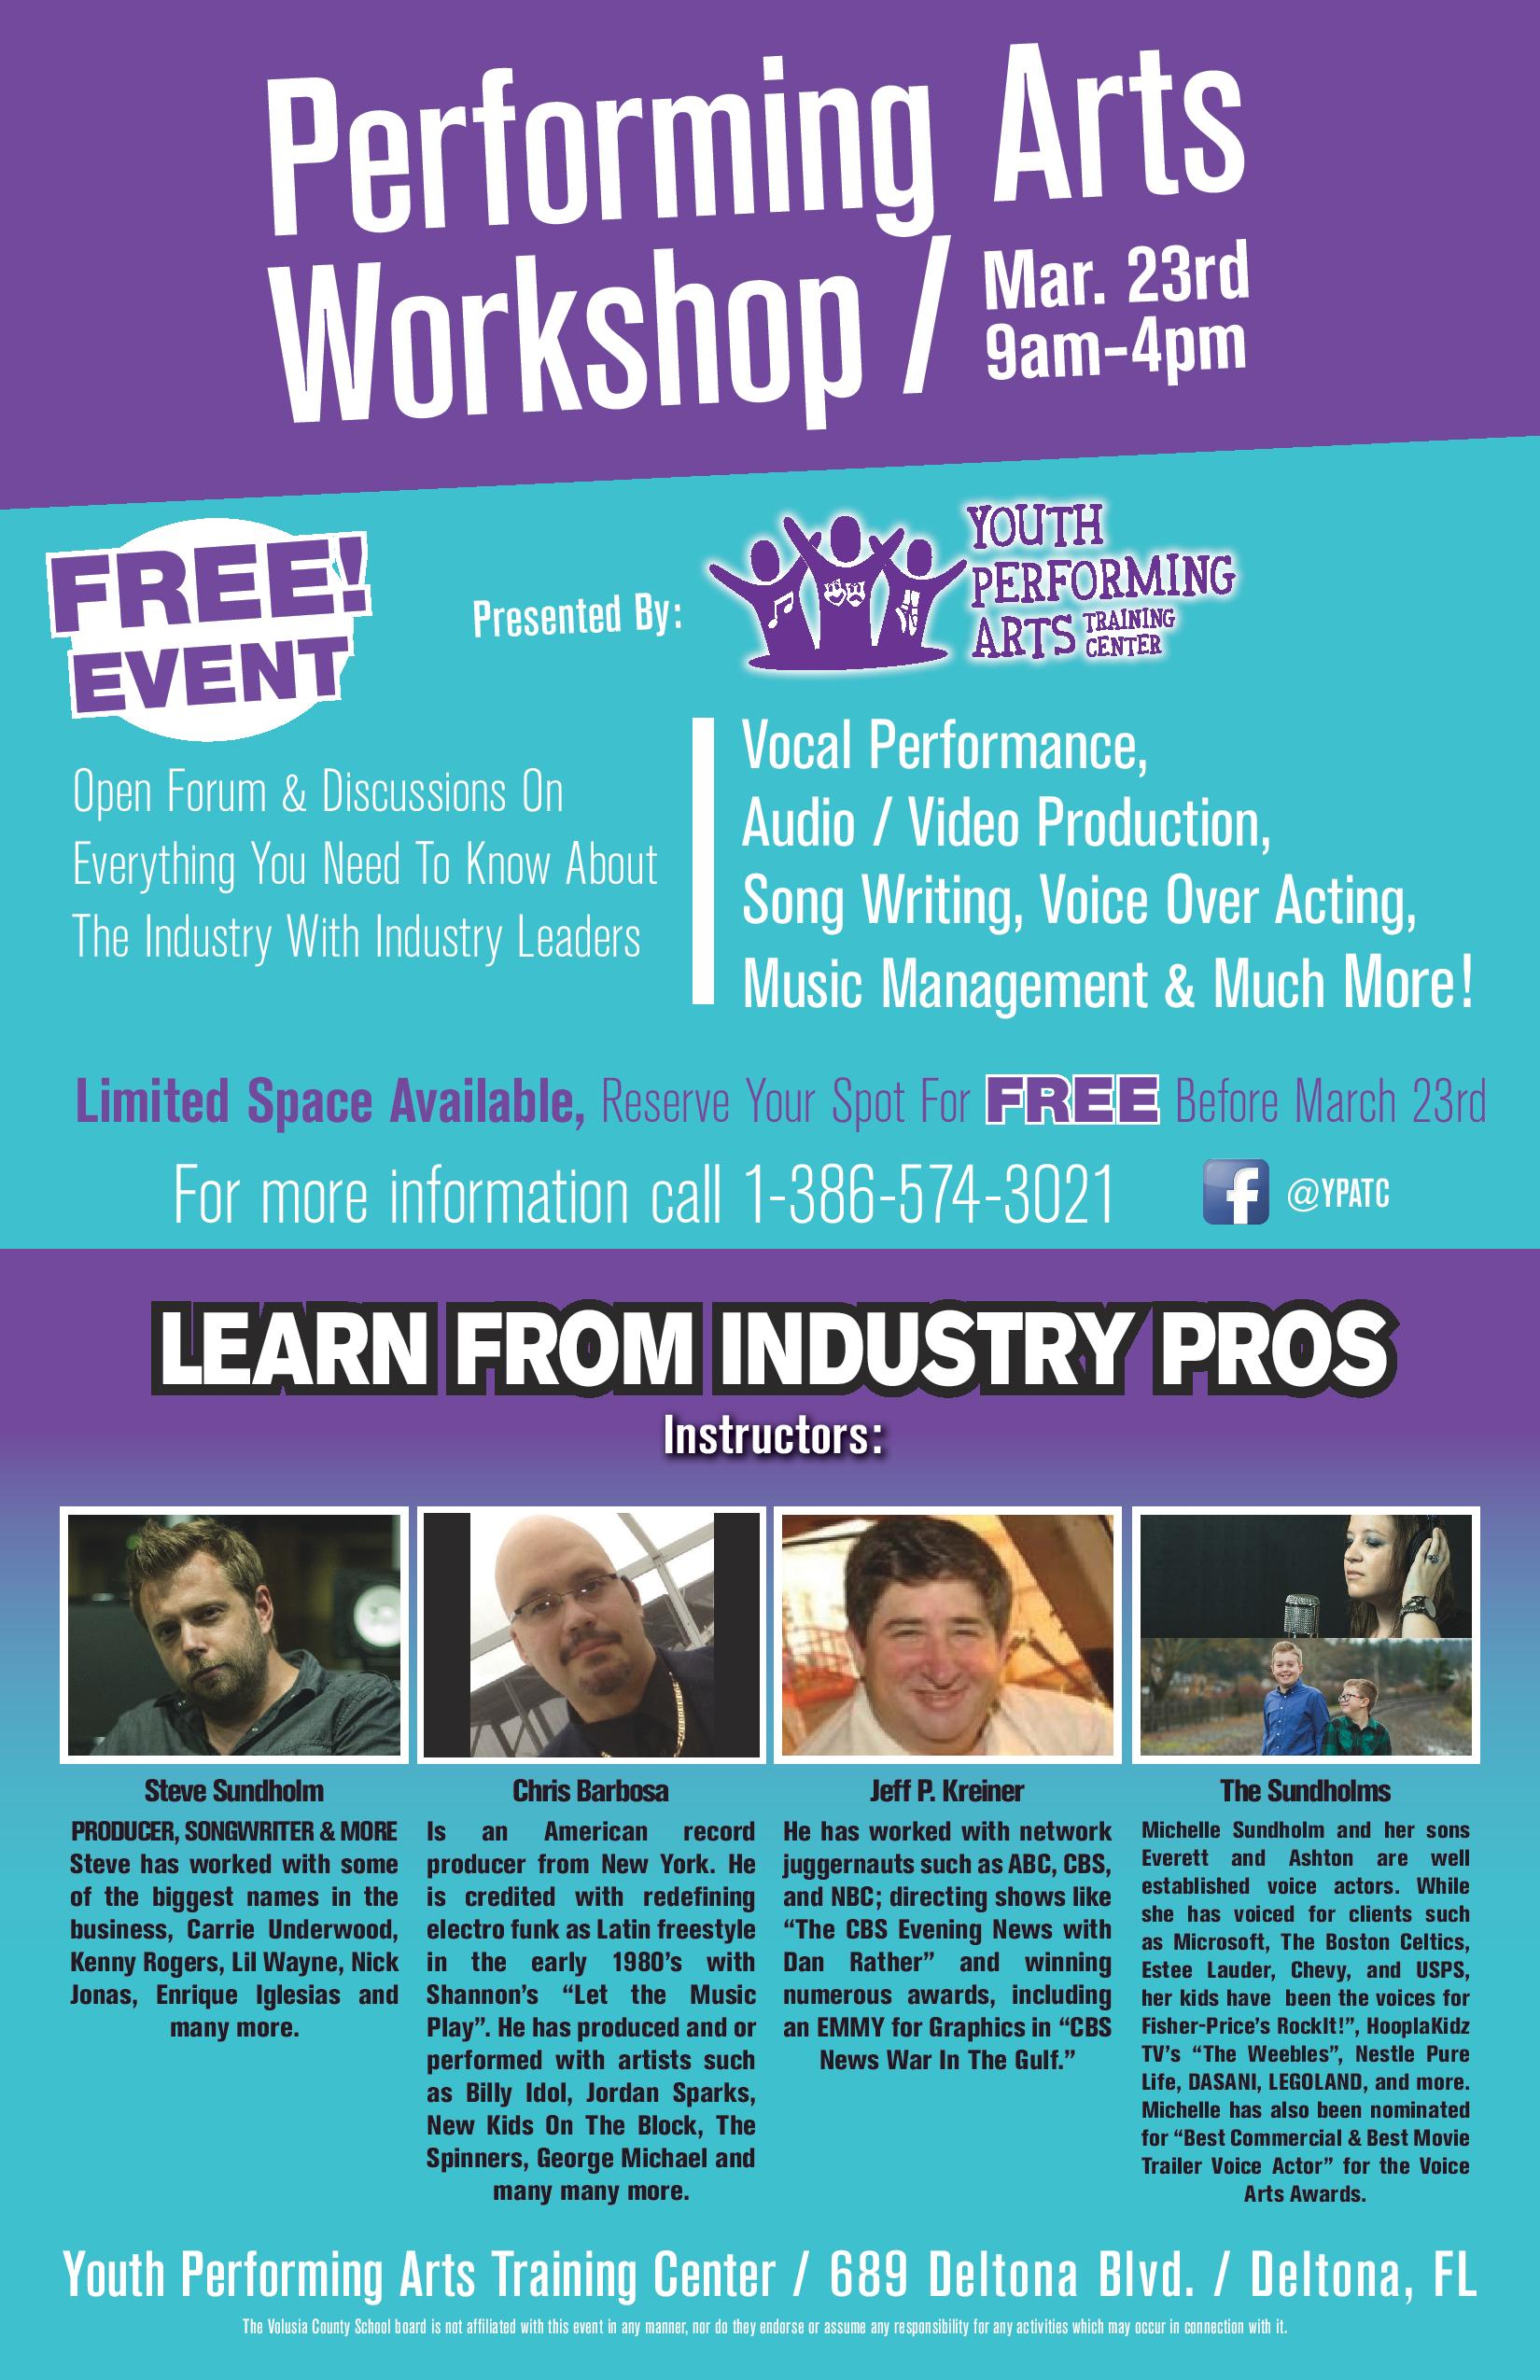 Workshop Flyer 2019 11x17-page-001.jpg